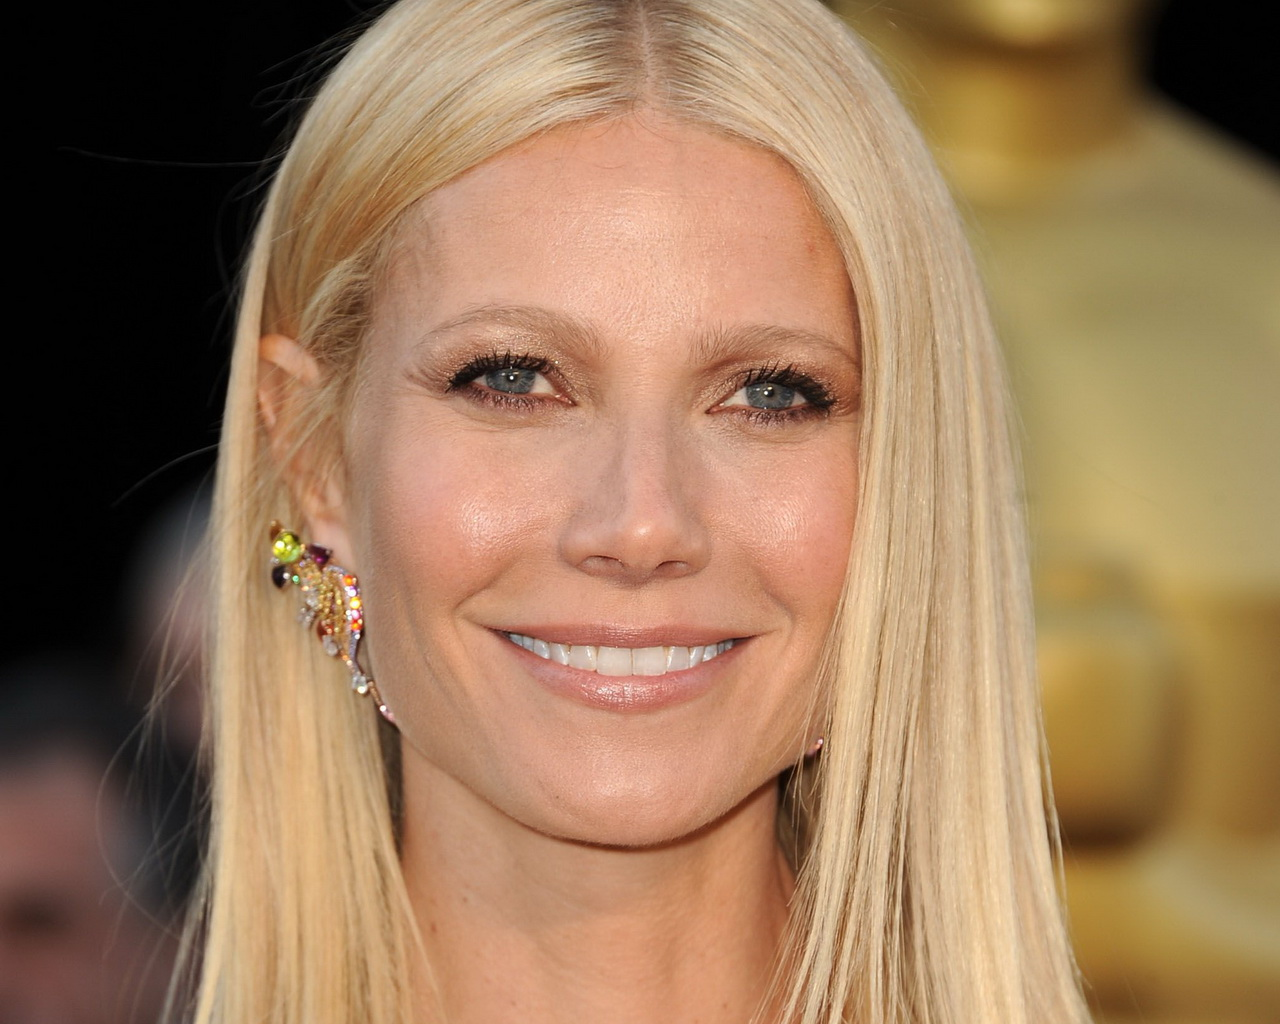 Gwyneth Paltrow Takes 'Food Stamp Challenge,' Gets Smacked on Social | PRNewser